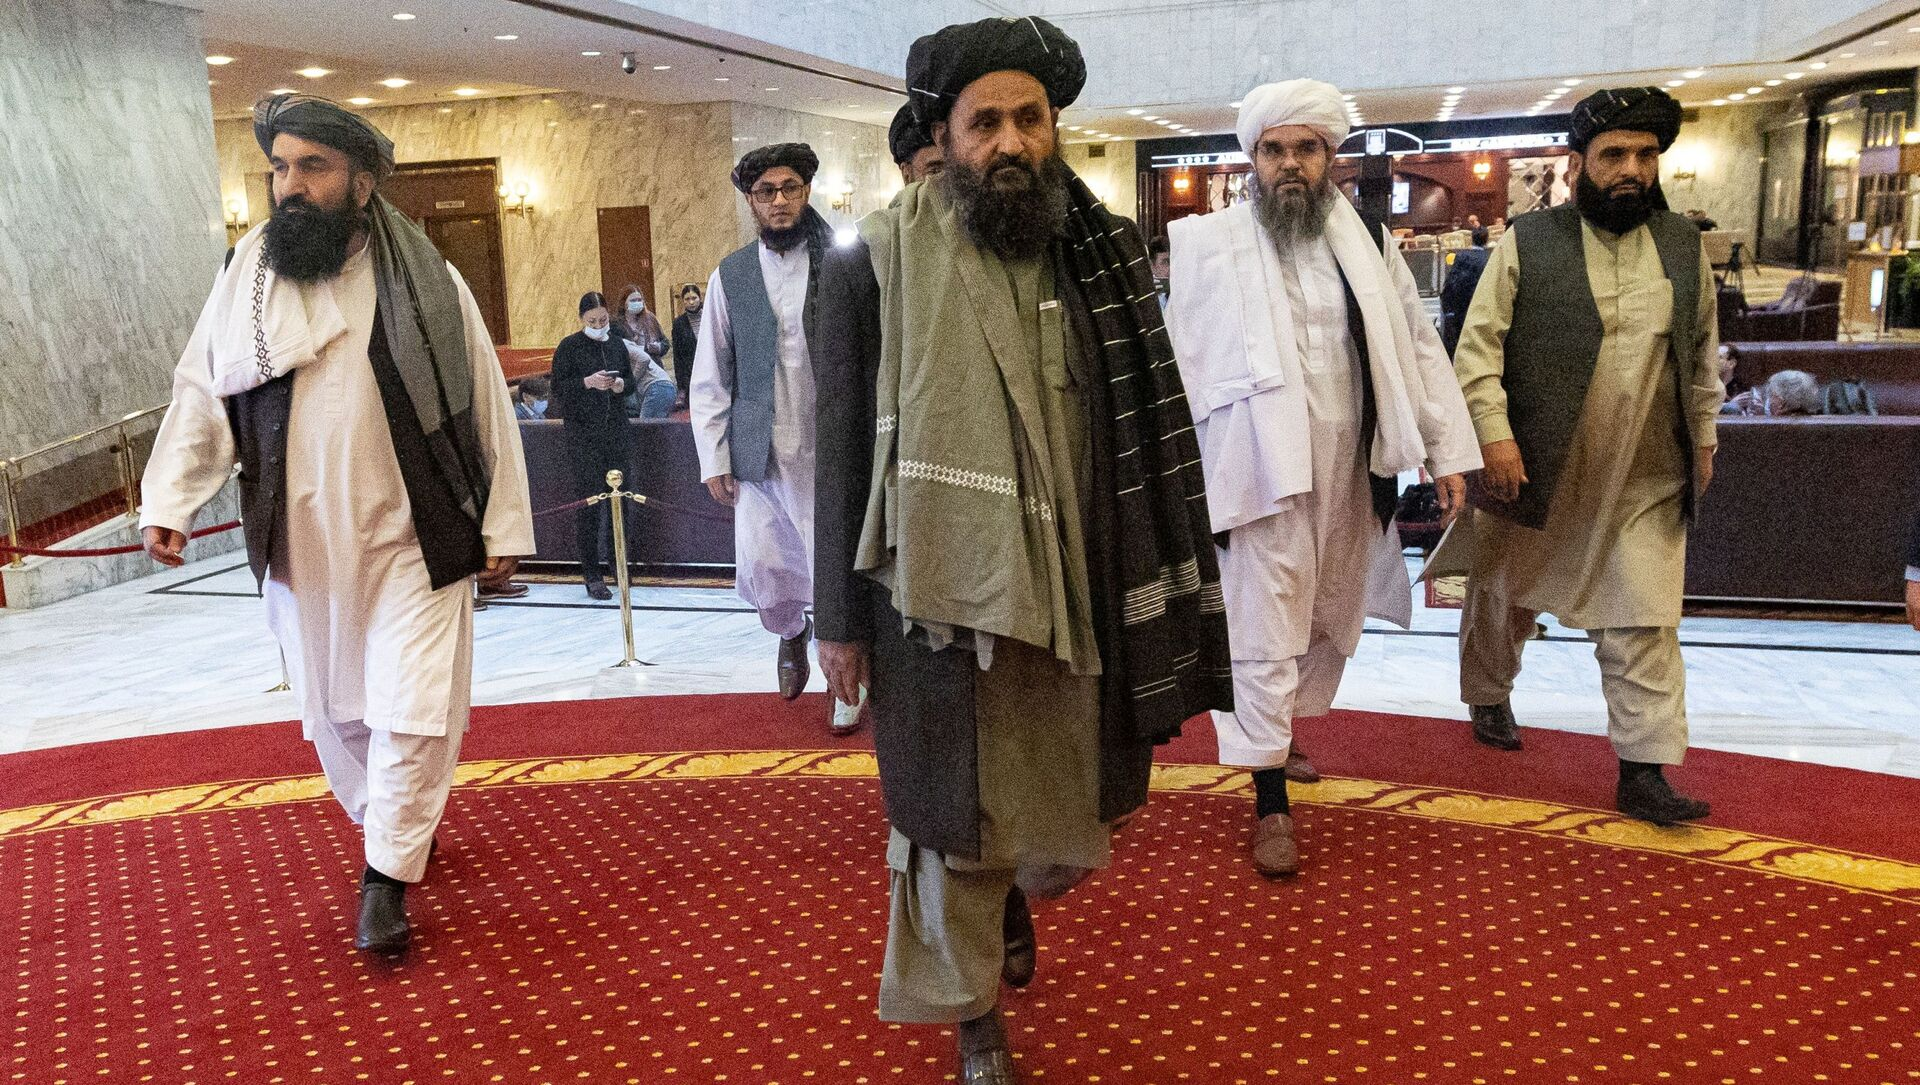 Mullah Abdul Ghani Baradar, the Taliban's deputy leader and negotiator, and other delegation members attend the Afghan peace conference in Moscow, Russia, 18 March 2021. - Sputnik International, 1920, 28.07.2021